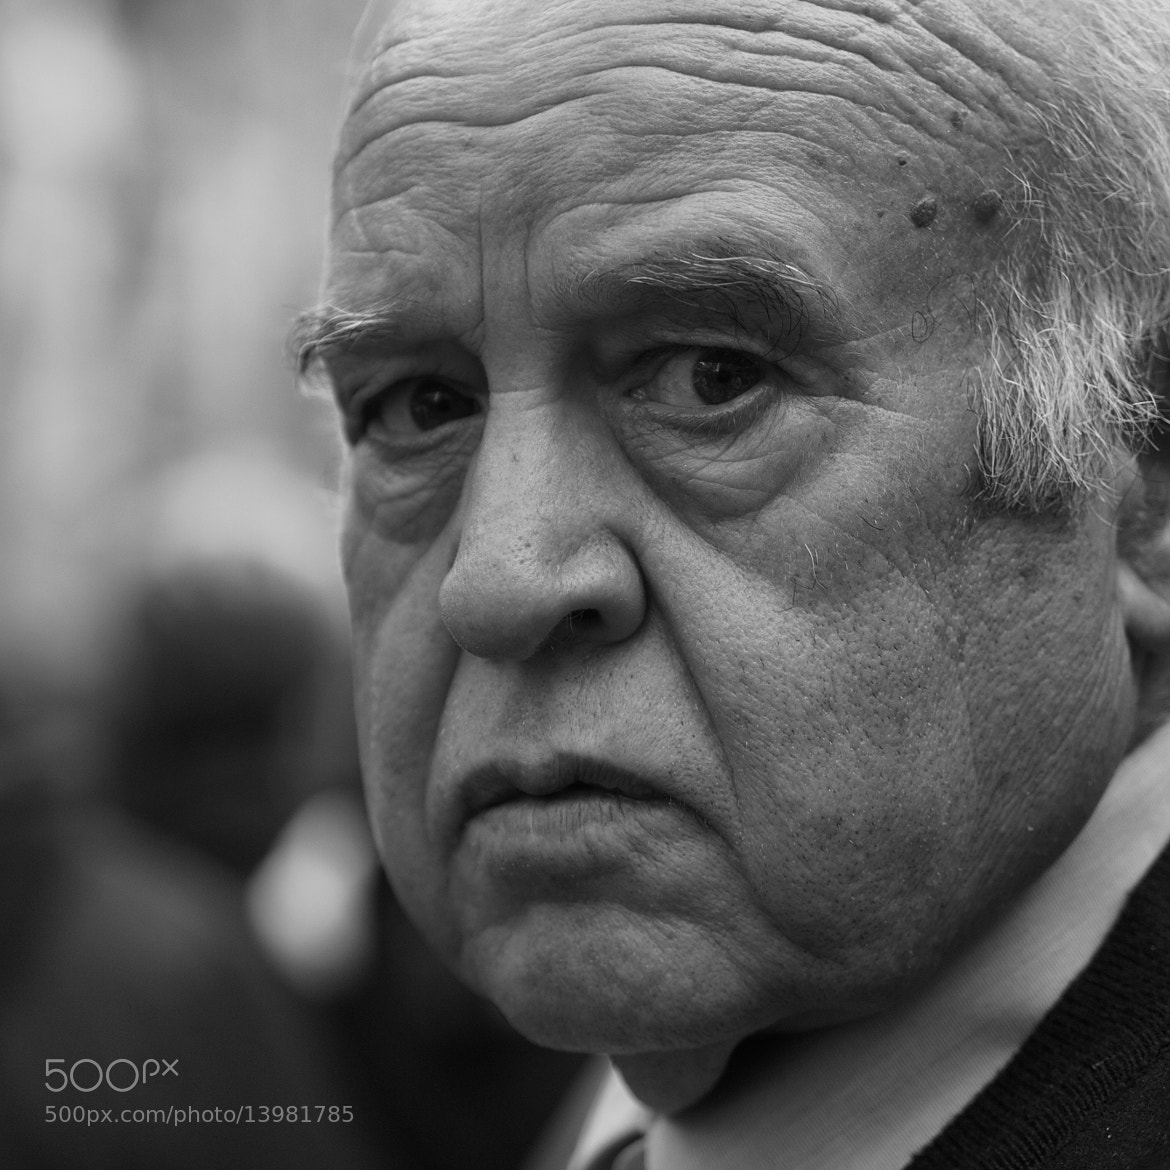 Photograph A serious man by Eduardo Páramo on 500px